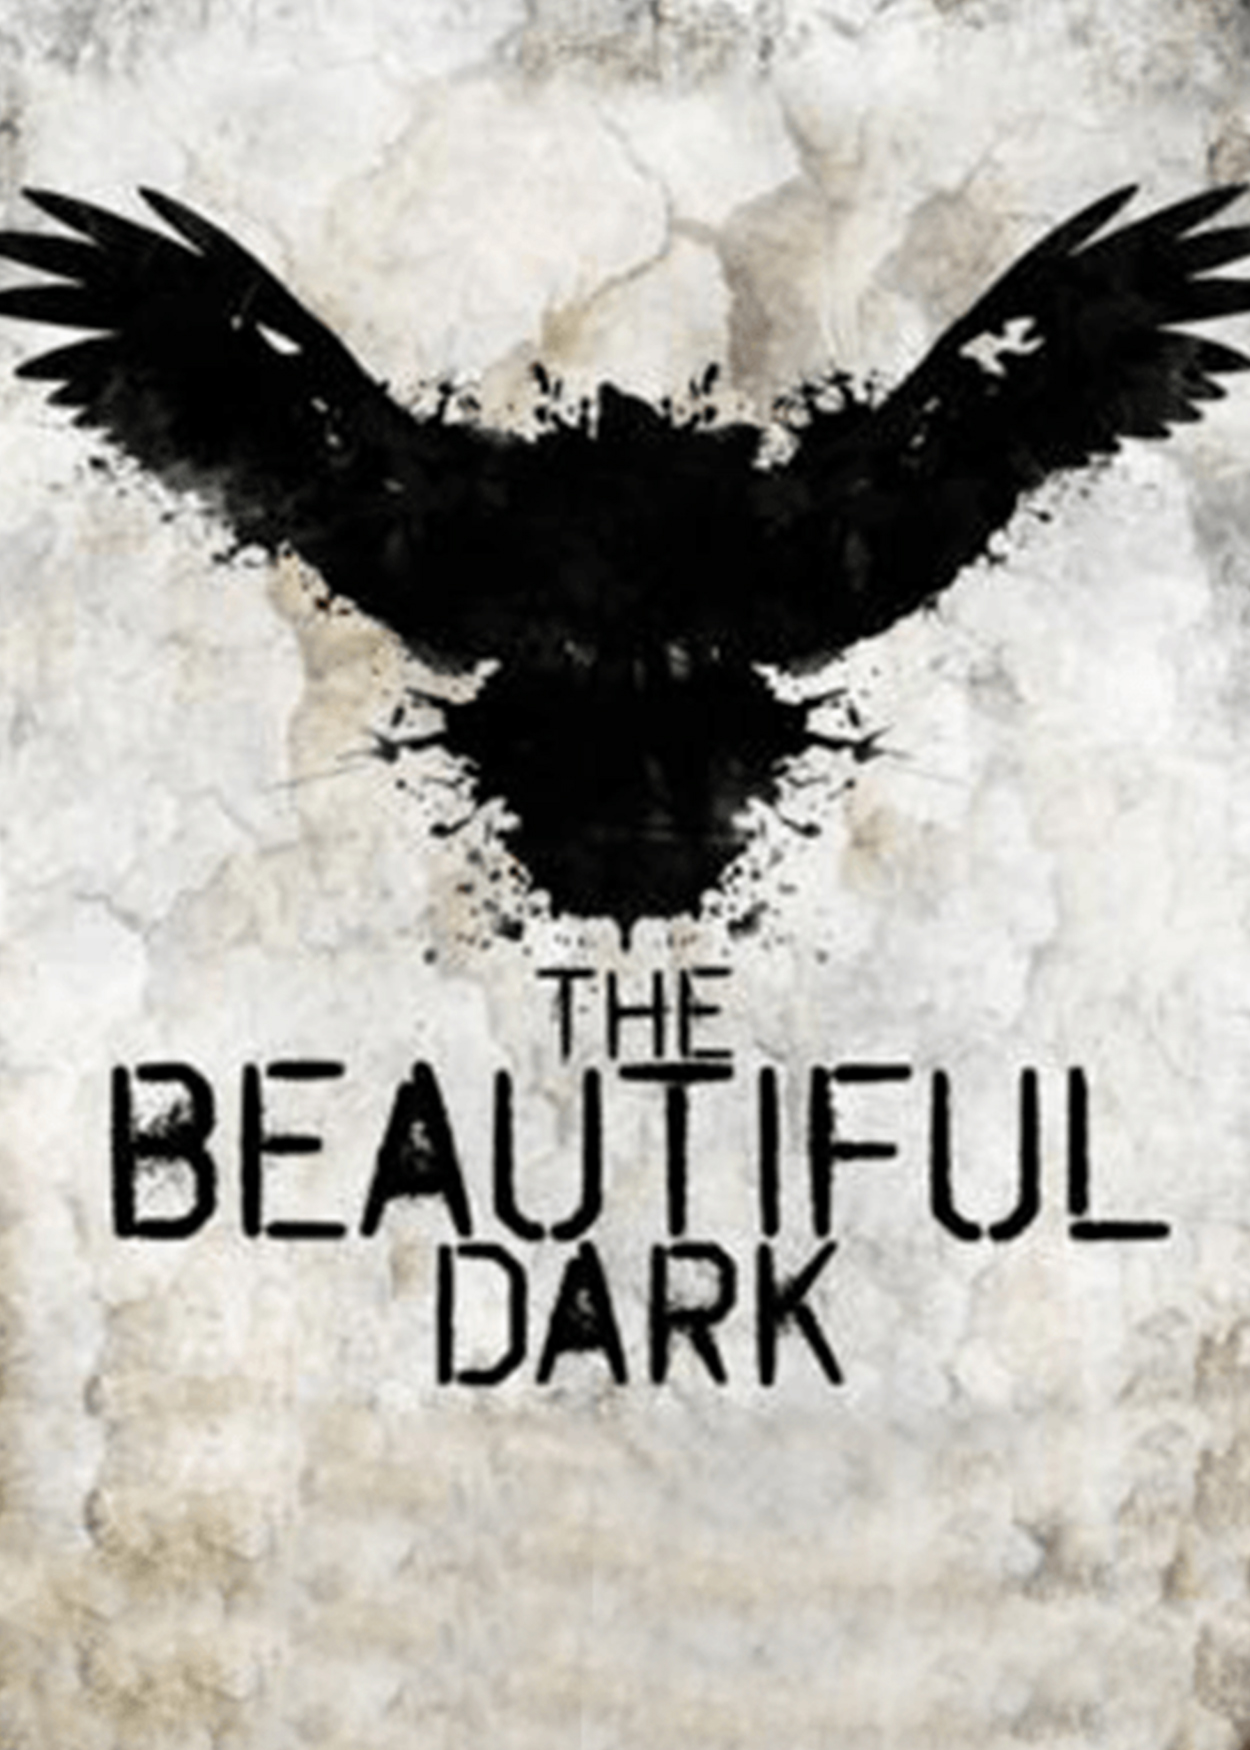 Key Art from The Beautiful Dark (2013). An inkblot image that ressembles a large black bird is at the center of the artwork.